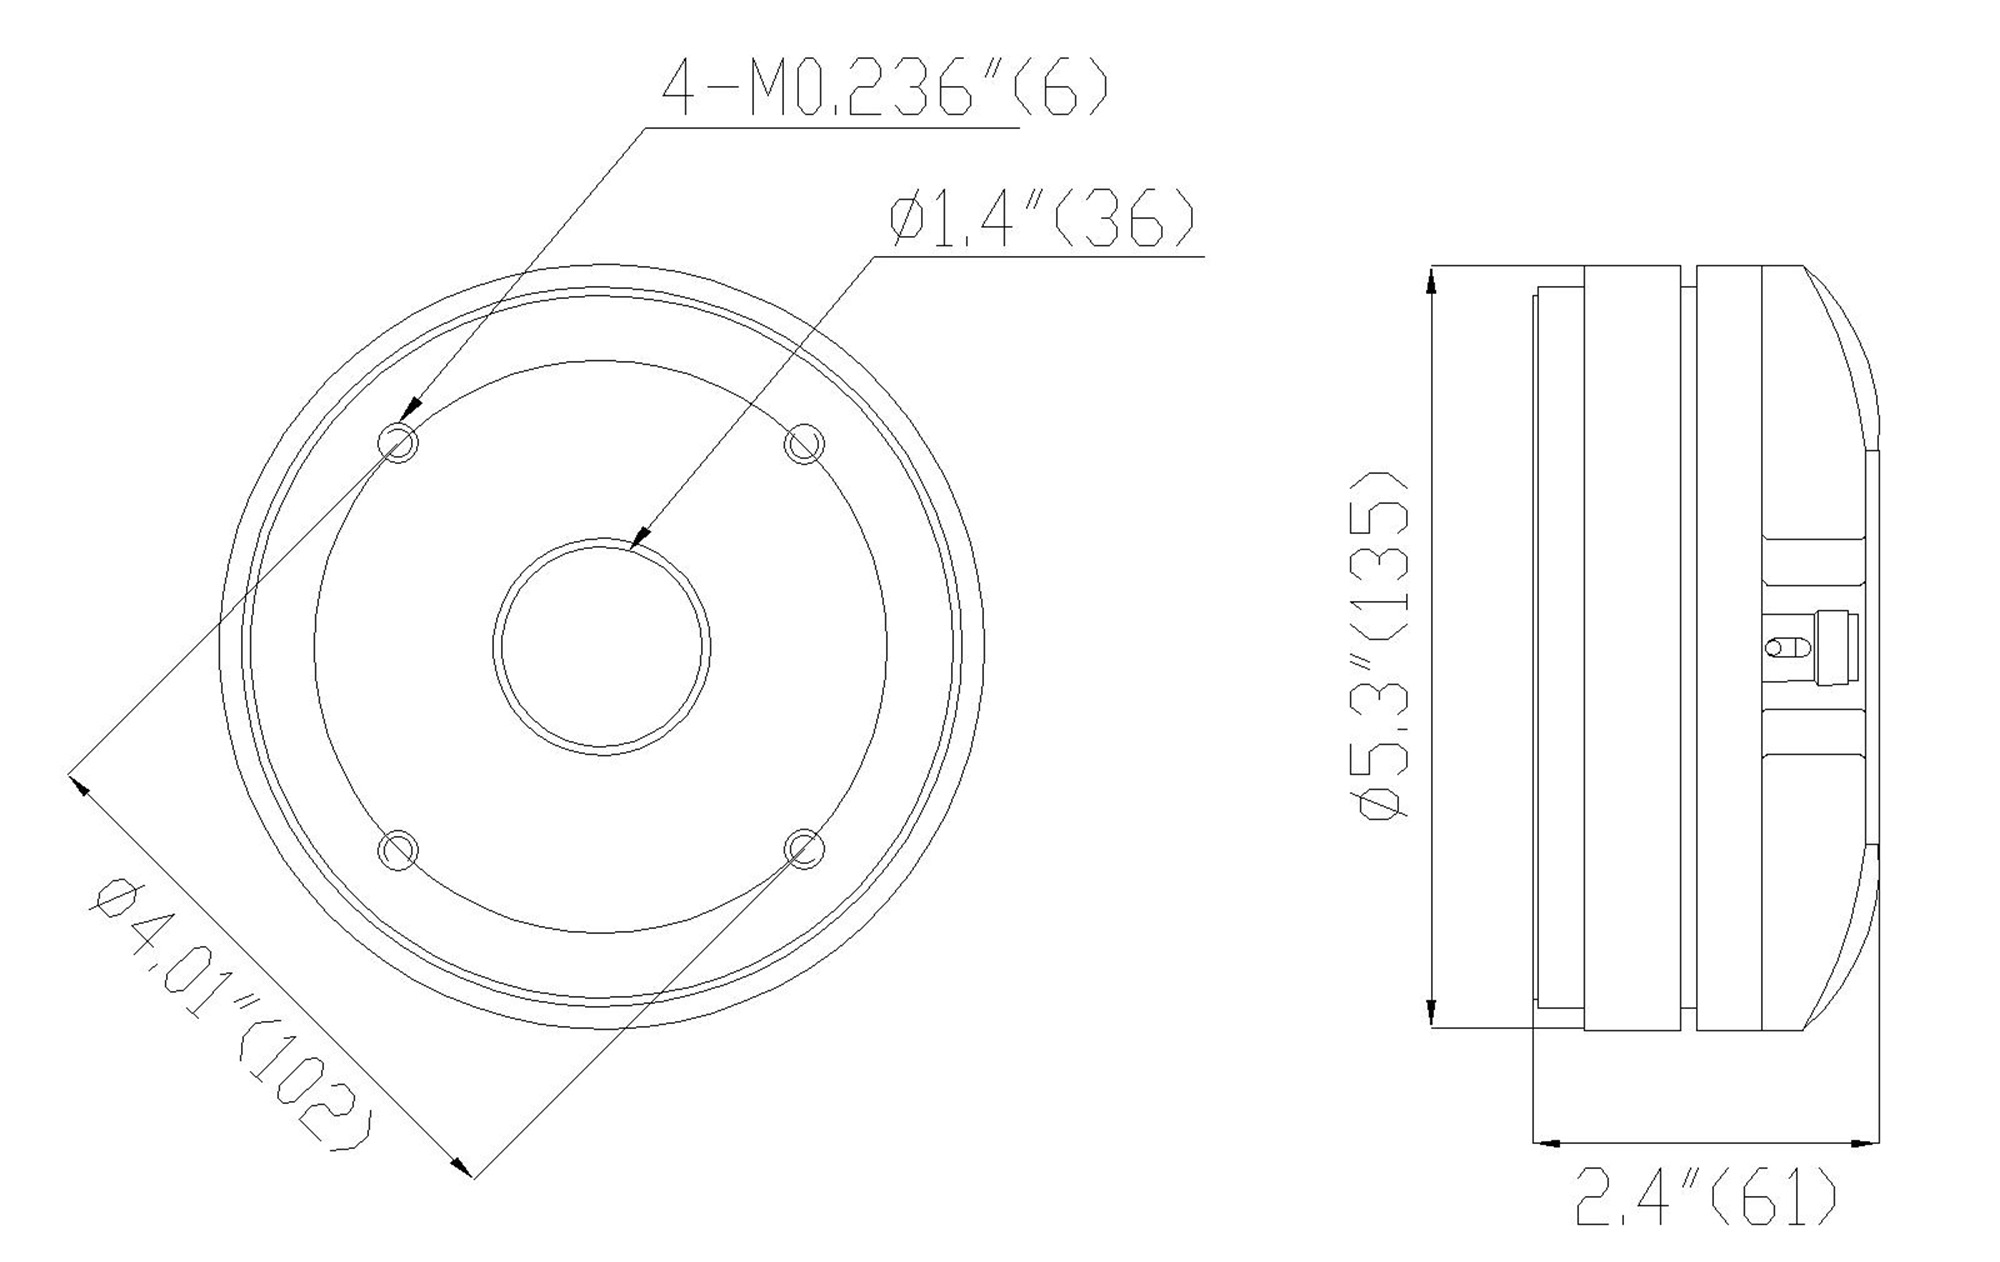 """Sound Town STHF-5103 1.4"""" Titanium Compression Driver, 120W, Pro Audio Speaker Horn Replacement Tweeter - Size, Dimensions Drawing, Mounting Information, Suggested Enclosure Volume"""